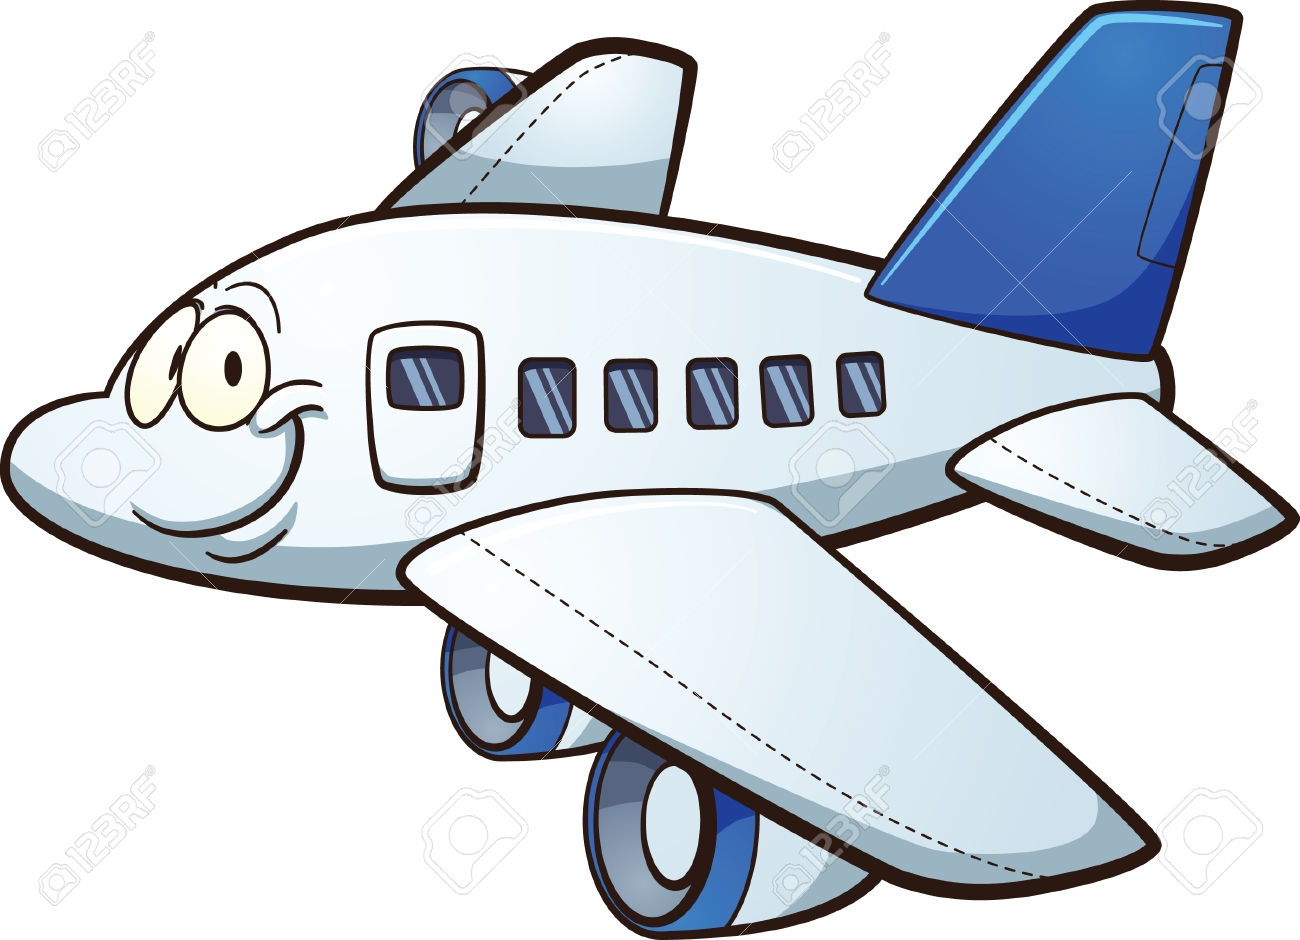 Airplane Clipart With Banner Clip art of Airplane Clipart #644.